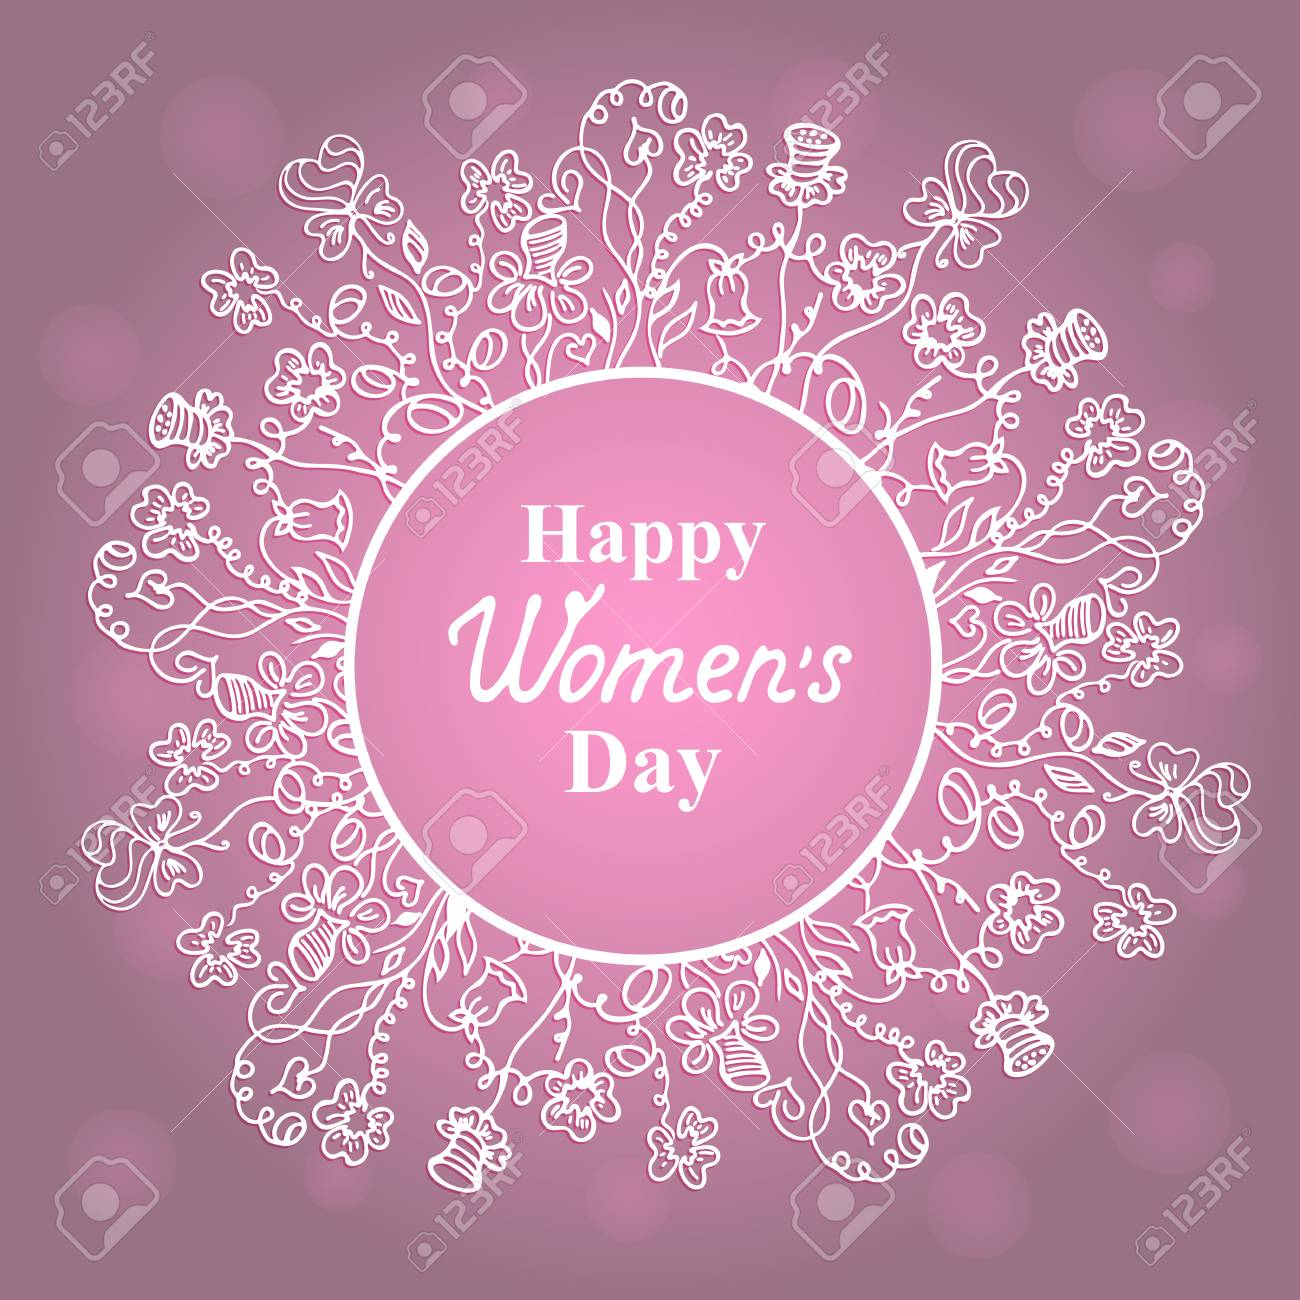 happy womens day. march 8. flower frame. concept design for a